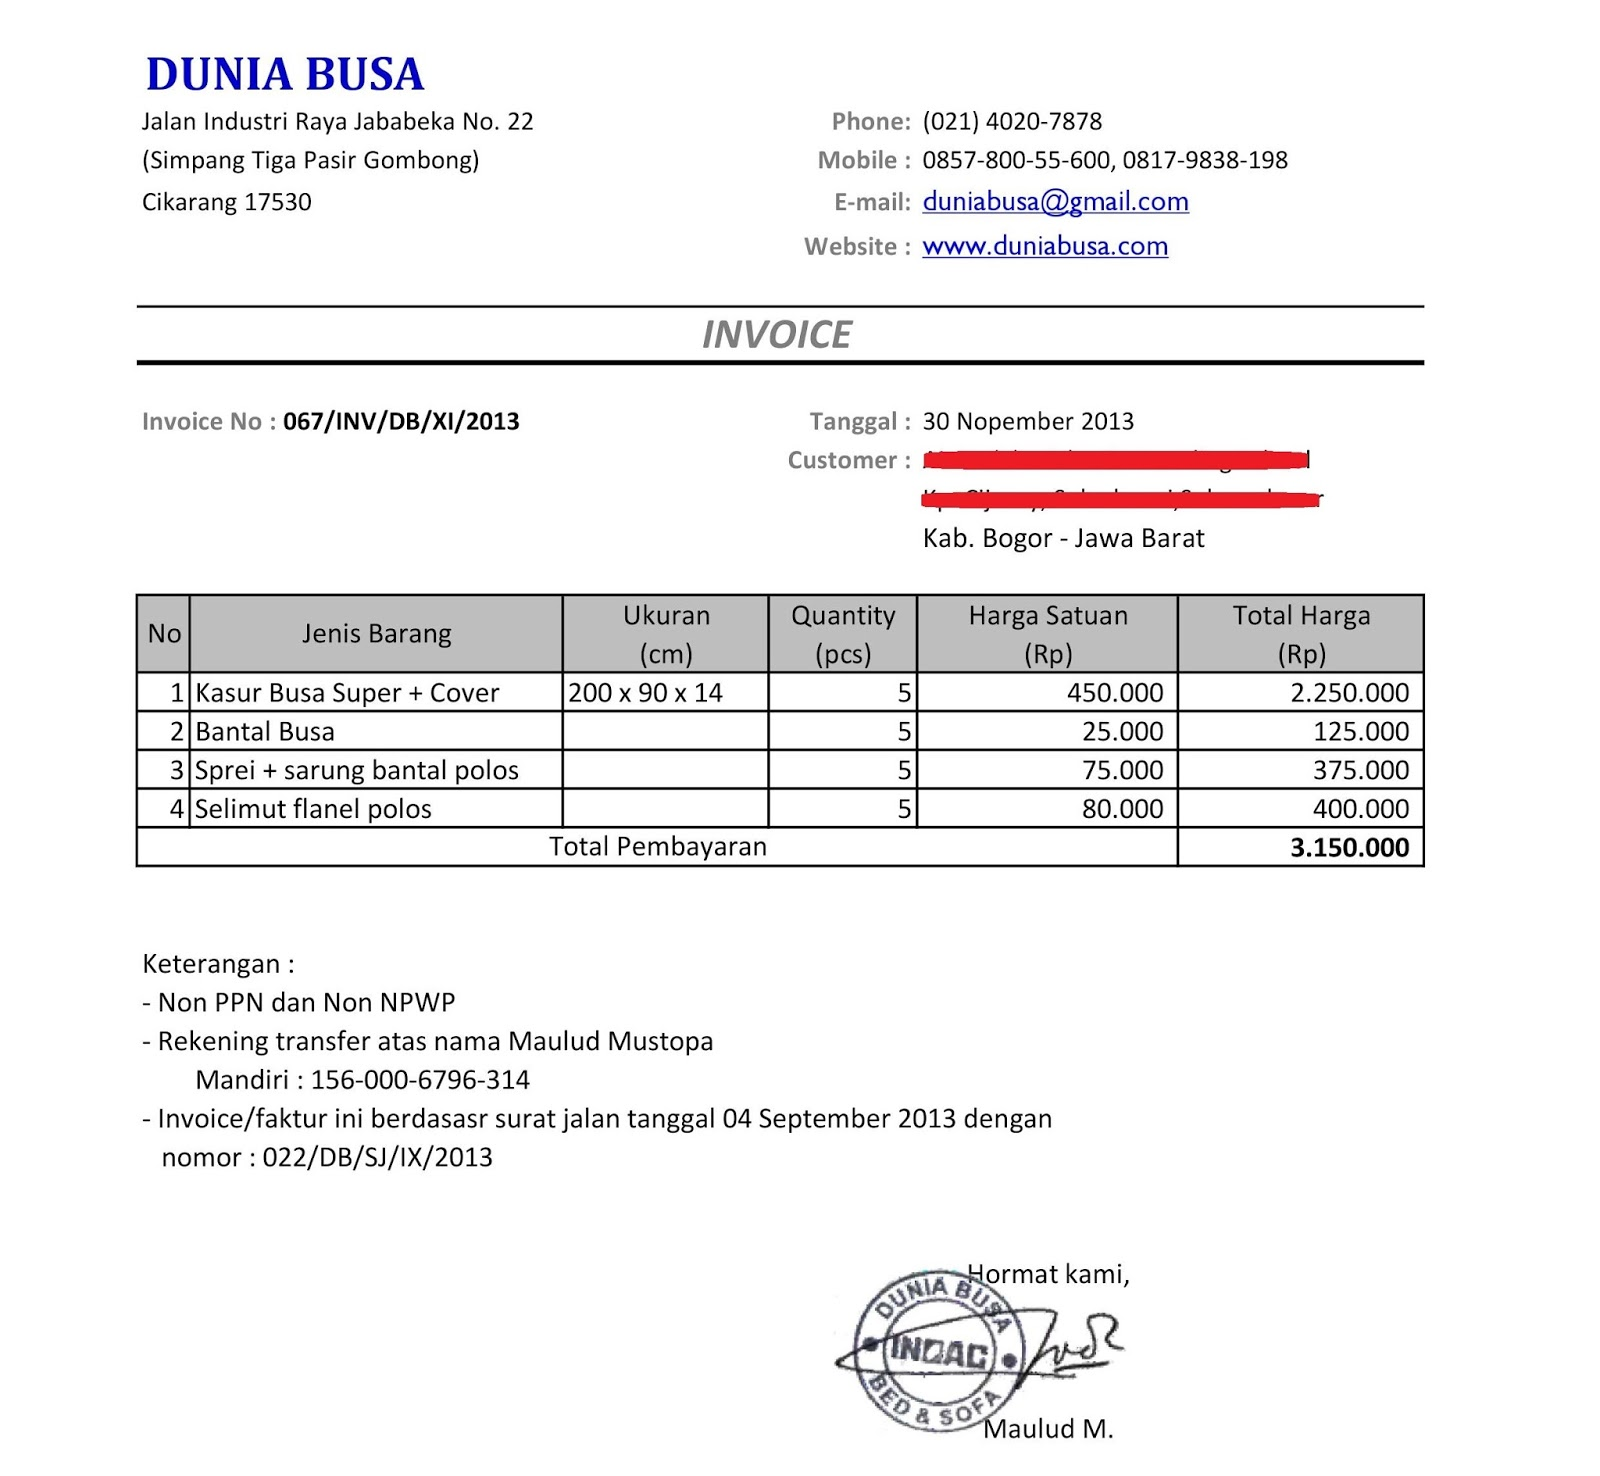 Usdgus  Gorgeous Free Invoice Online  Create Invoice Online  Invoice Template  With Marvelous Contoh Format Invoice Atau Surat Tagihan  Brankas Arsip  Free Invoice Online With Easy On The Eye Invoice Format In Excel Sheet Also Tax Invoice Requirements In Addition Gnucash Invoice Template And Shipping Invoice Format As Well As Factoring Vs Invoice Discounting Additionally How To Right An Invoice From Sklepco With Usdgus  Marvelous Free Invoice Online  Create Invoice Online  Invoice Template  With Easy On The Eye Contoh Format Invoice Atau Surat Tagihan  Brankas Arsip  Free Invoice Online And Gorgeous Invoice Format In Excel Sheet Also Tax Invoice Requirements In Addition Gnucash Invoice Template From Sklepco